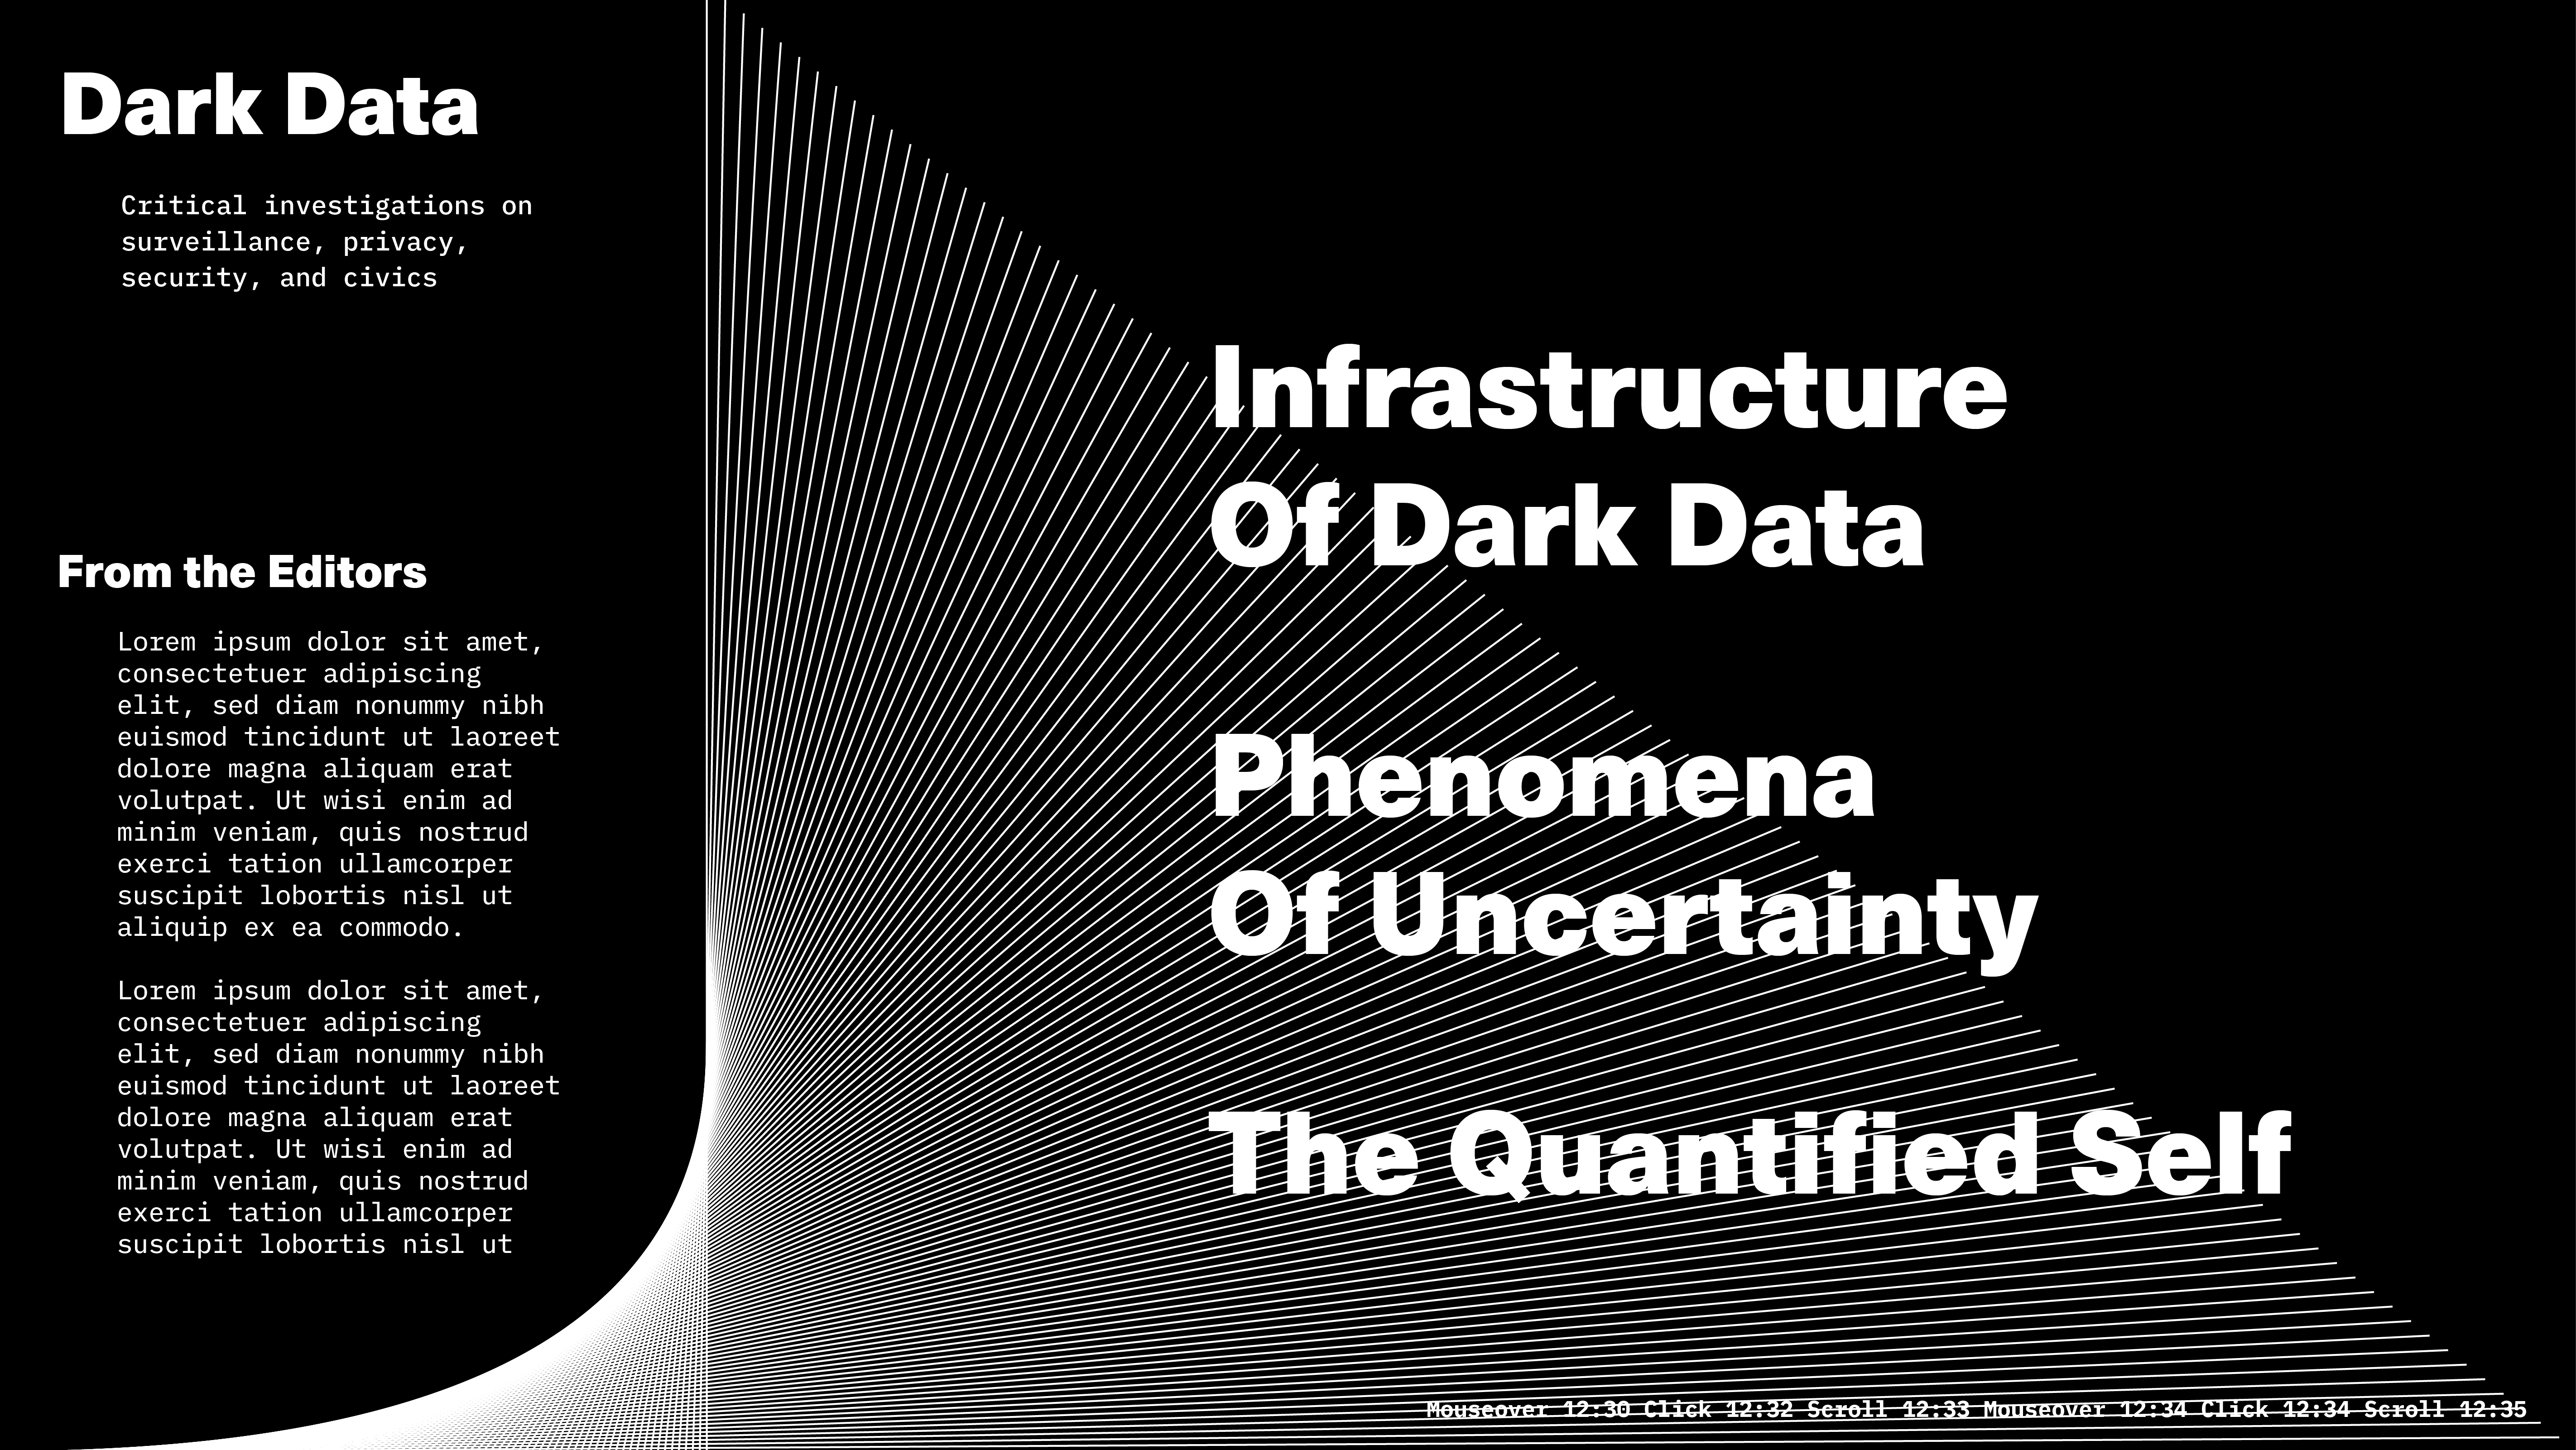 darkdata_publication_draft3-08